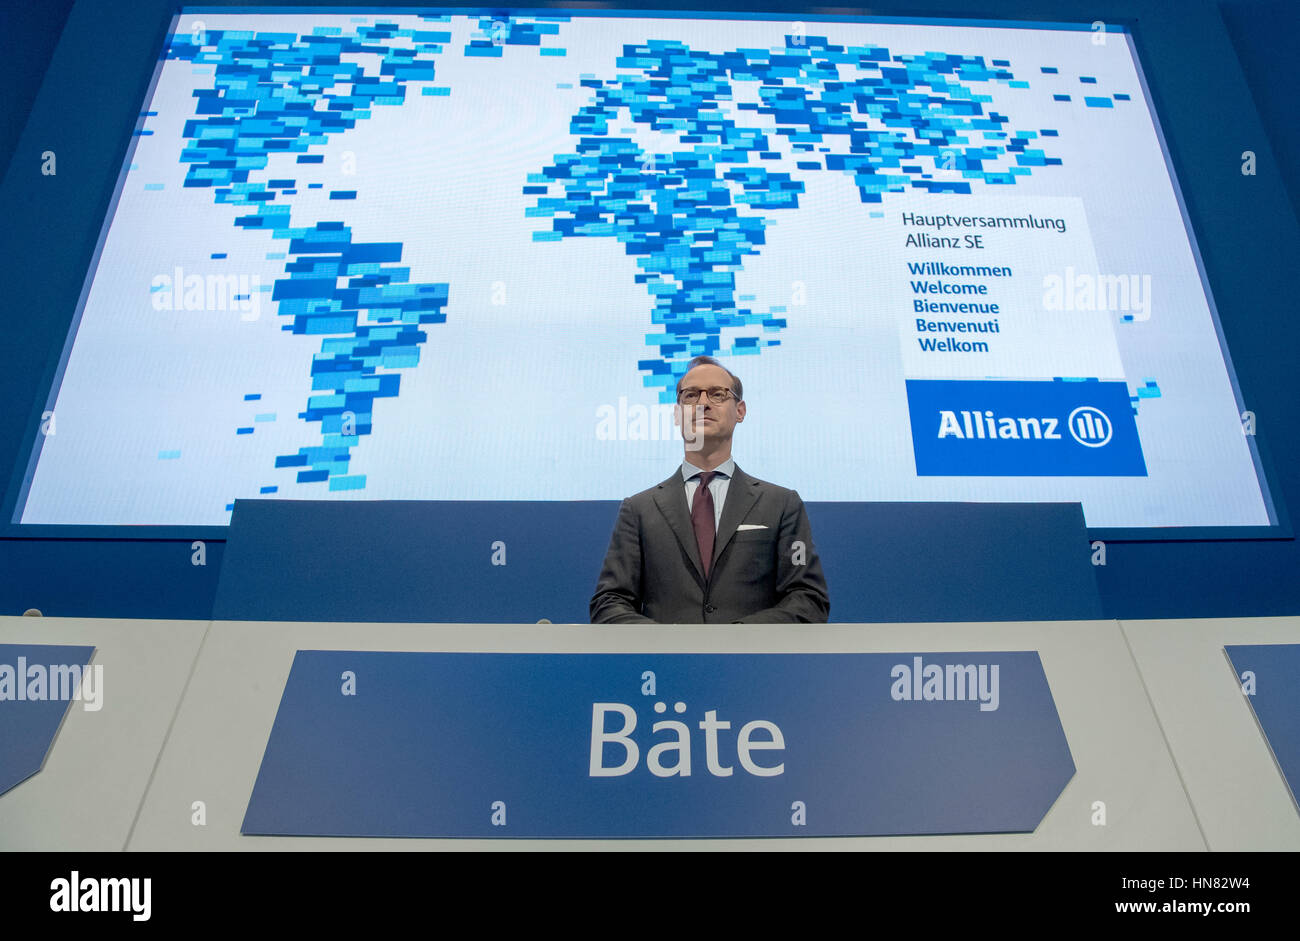 Munich, Germany. 04th Apr, 2016. CEO of Allianz SE, Oliver Baete, stands at the podium ahead of the Allianz general assembly in Munich, Germany, 04 April 2016. Photo: PETER KNEFFEL/dpa | usage worldwide/dpa/Alamy Live News Stock Photo